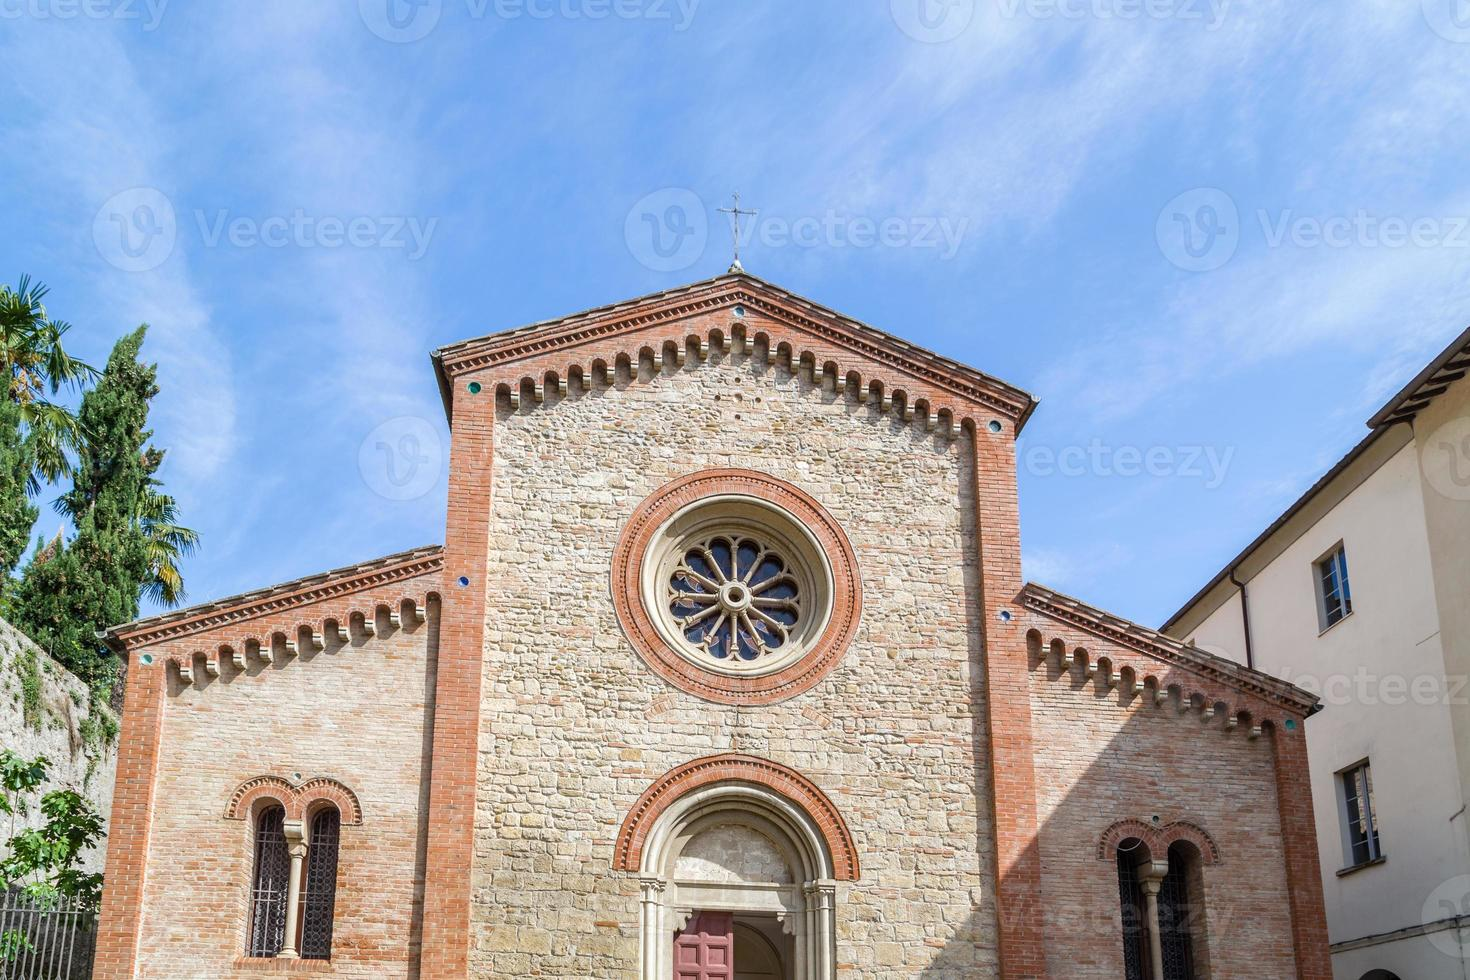 Facade of XIV Catholics parish church in Italy photo